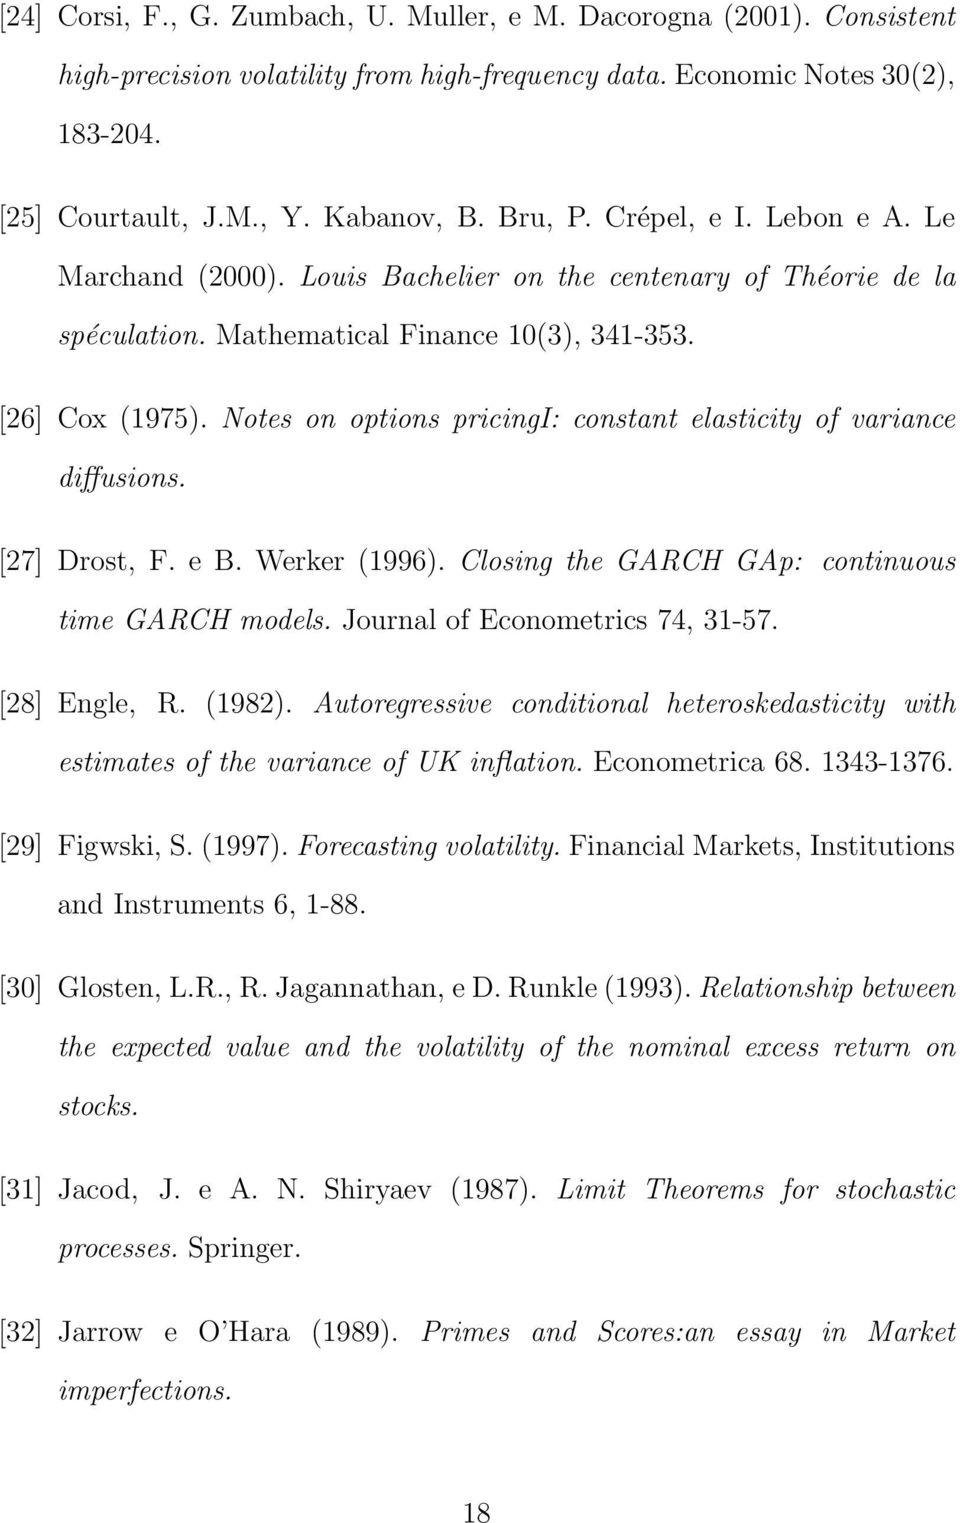 Notes on options pricingi: constant elasticity of variance diffusions. [27] Drost, F. e B. Werker (1996). Closing the GARCH GAp: continuous time GARCH models. Journal of Econometrics 74, 31-57.